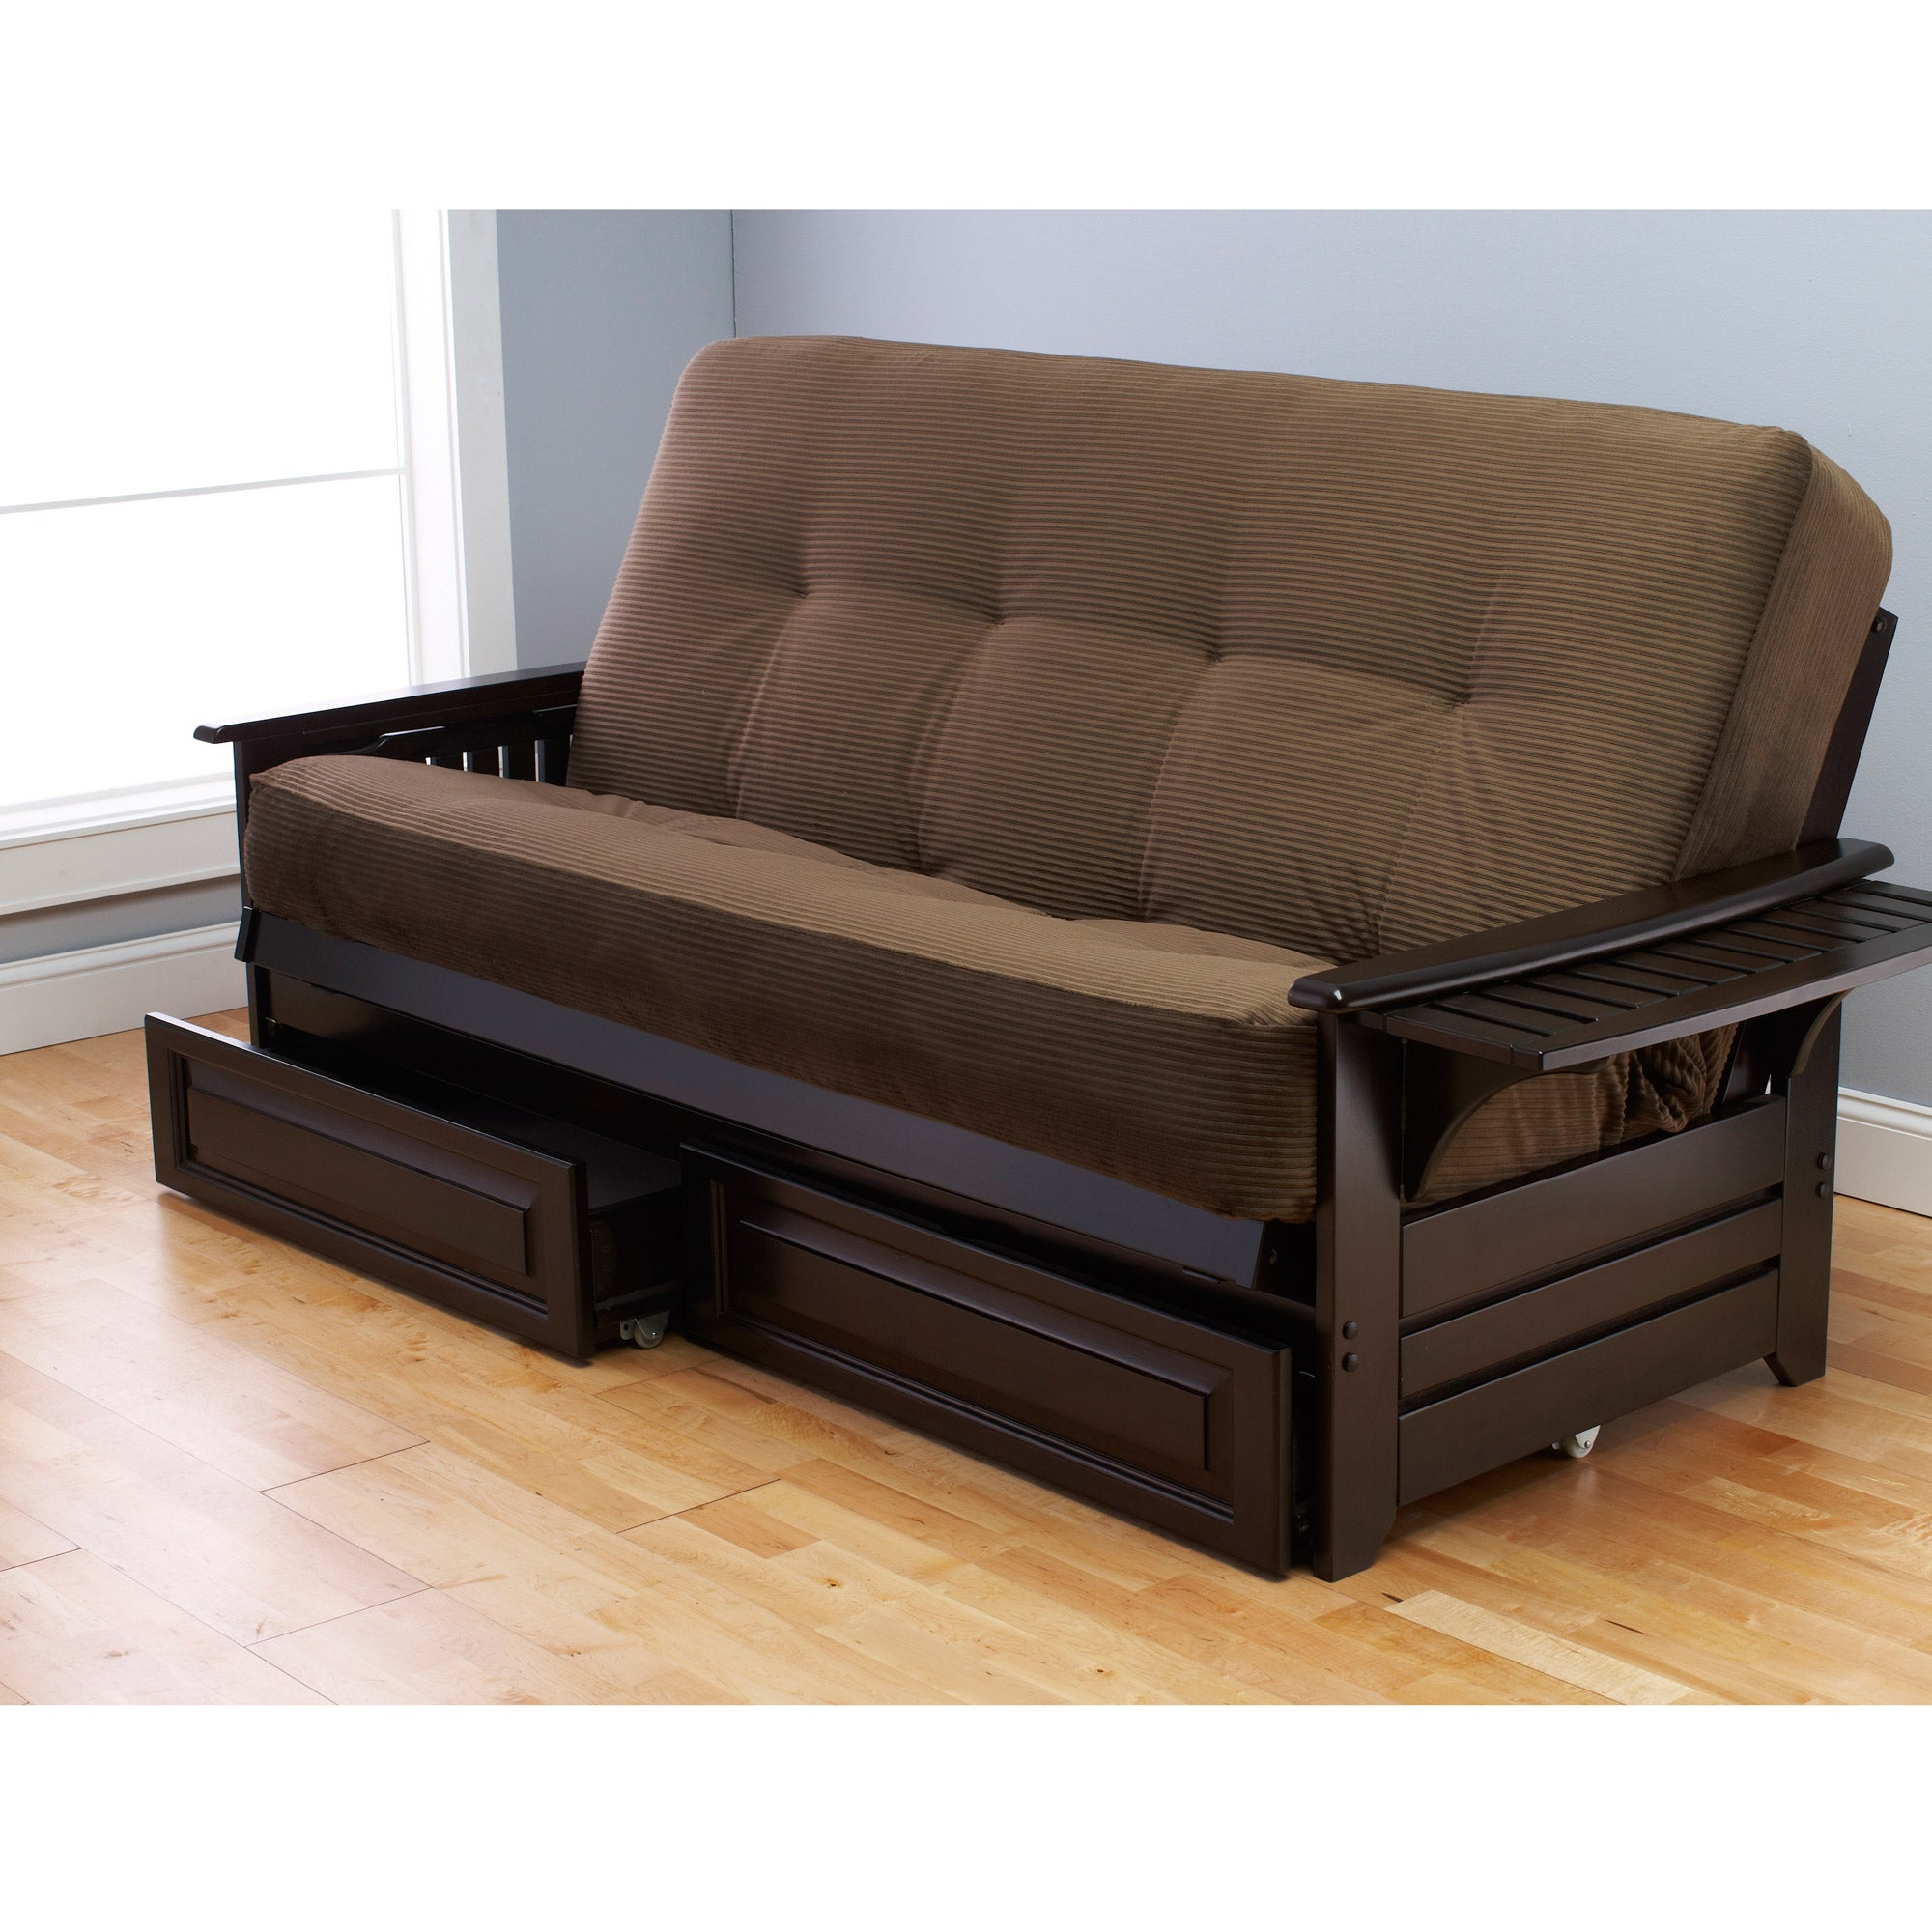 Somette Ali Phonics Multi-flex Espresso Full-size Wood Futon Frame, Drawers and Mattress Set